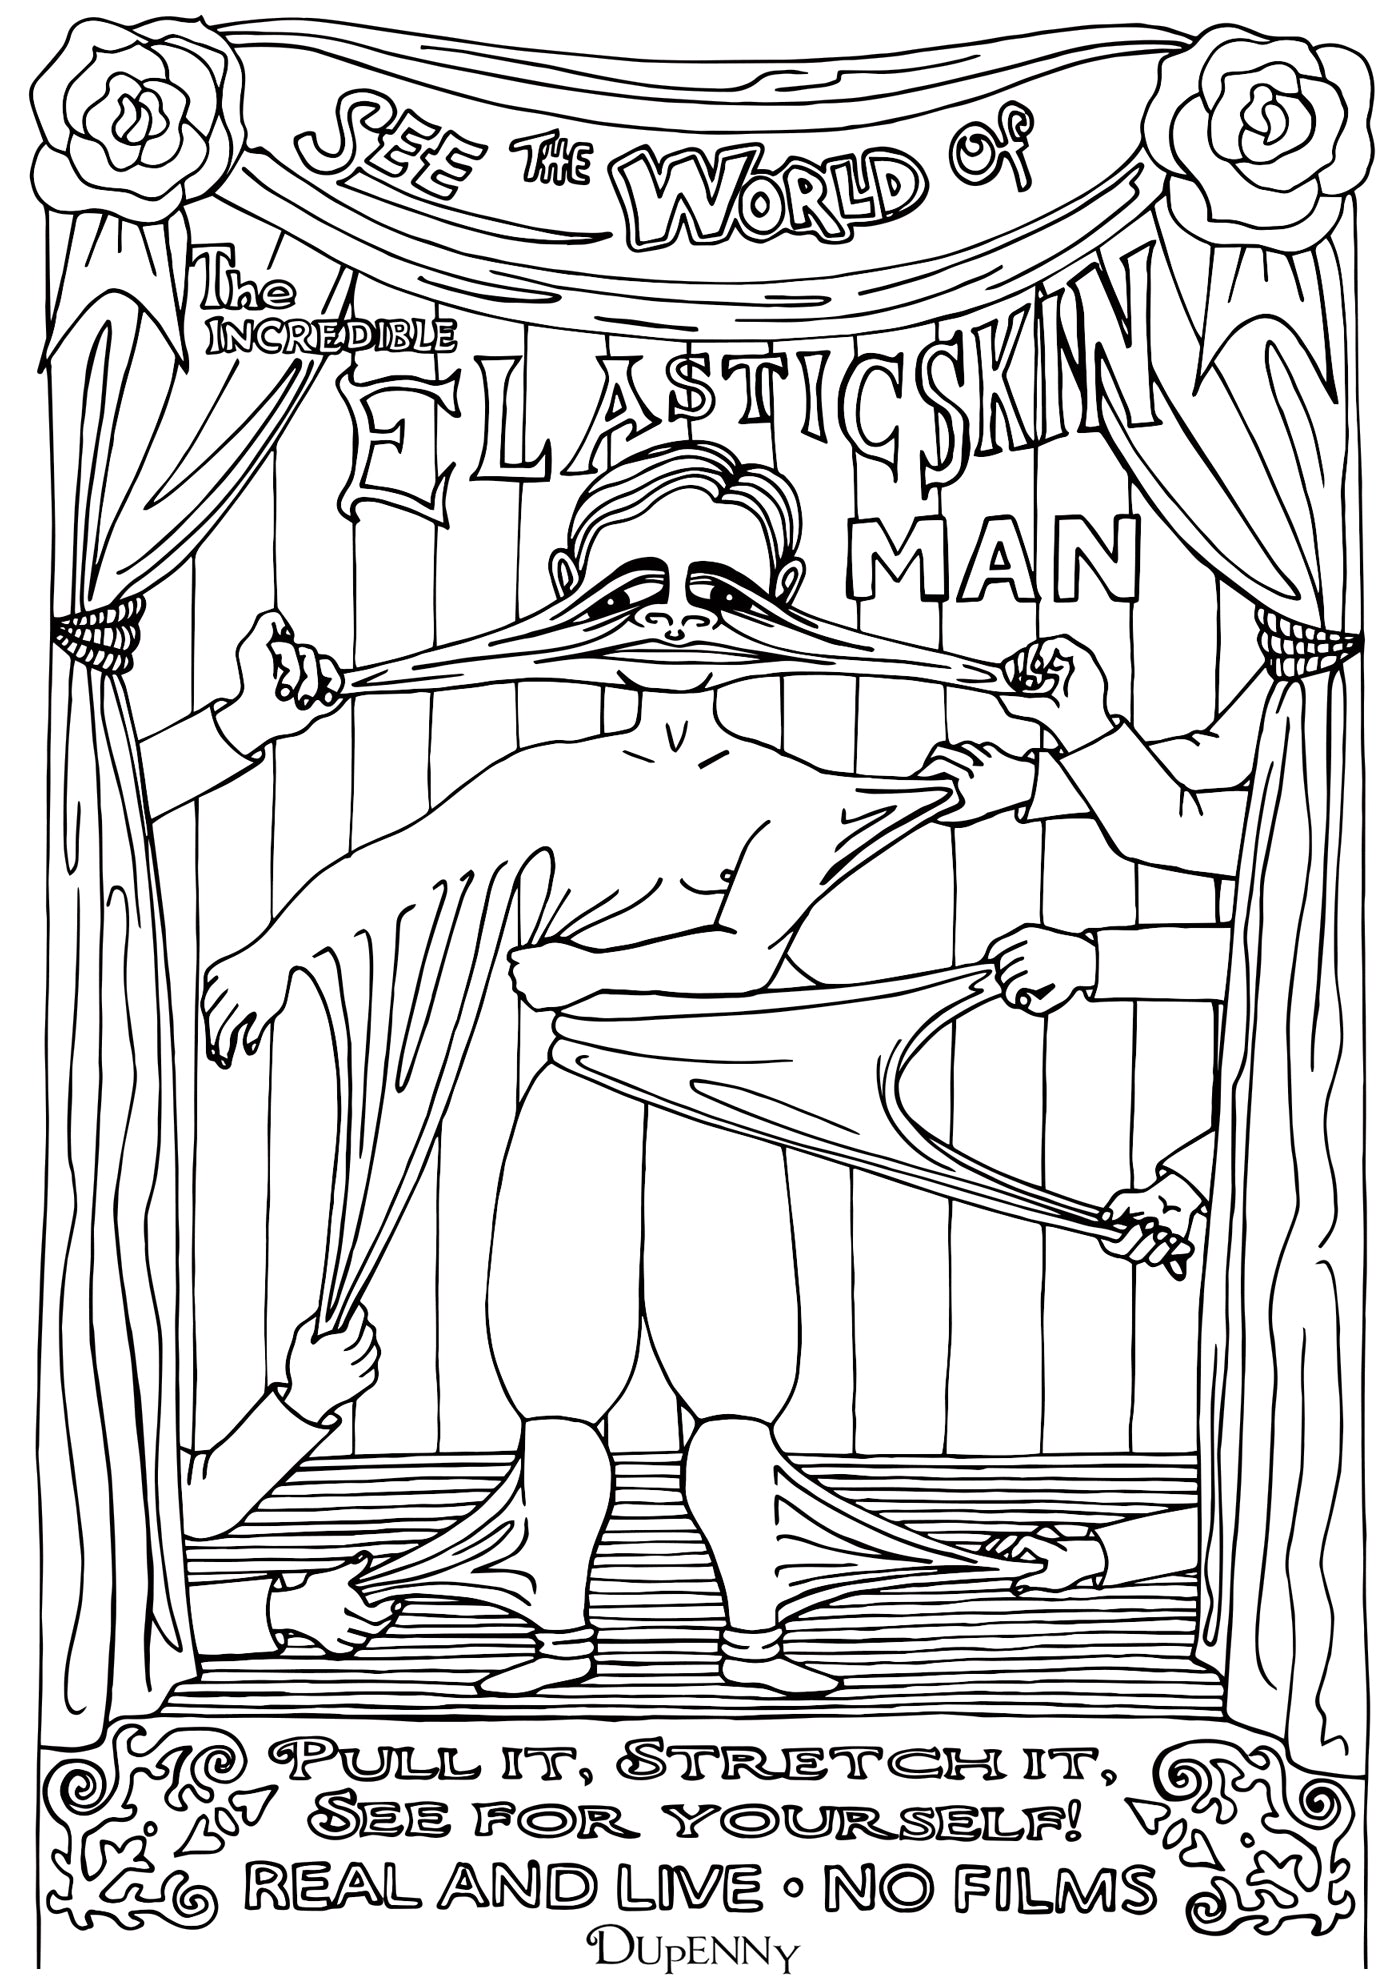 Dupenny A4 Coney Island 'Elastic Man' Colouring Poster FREE